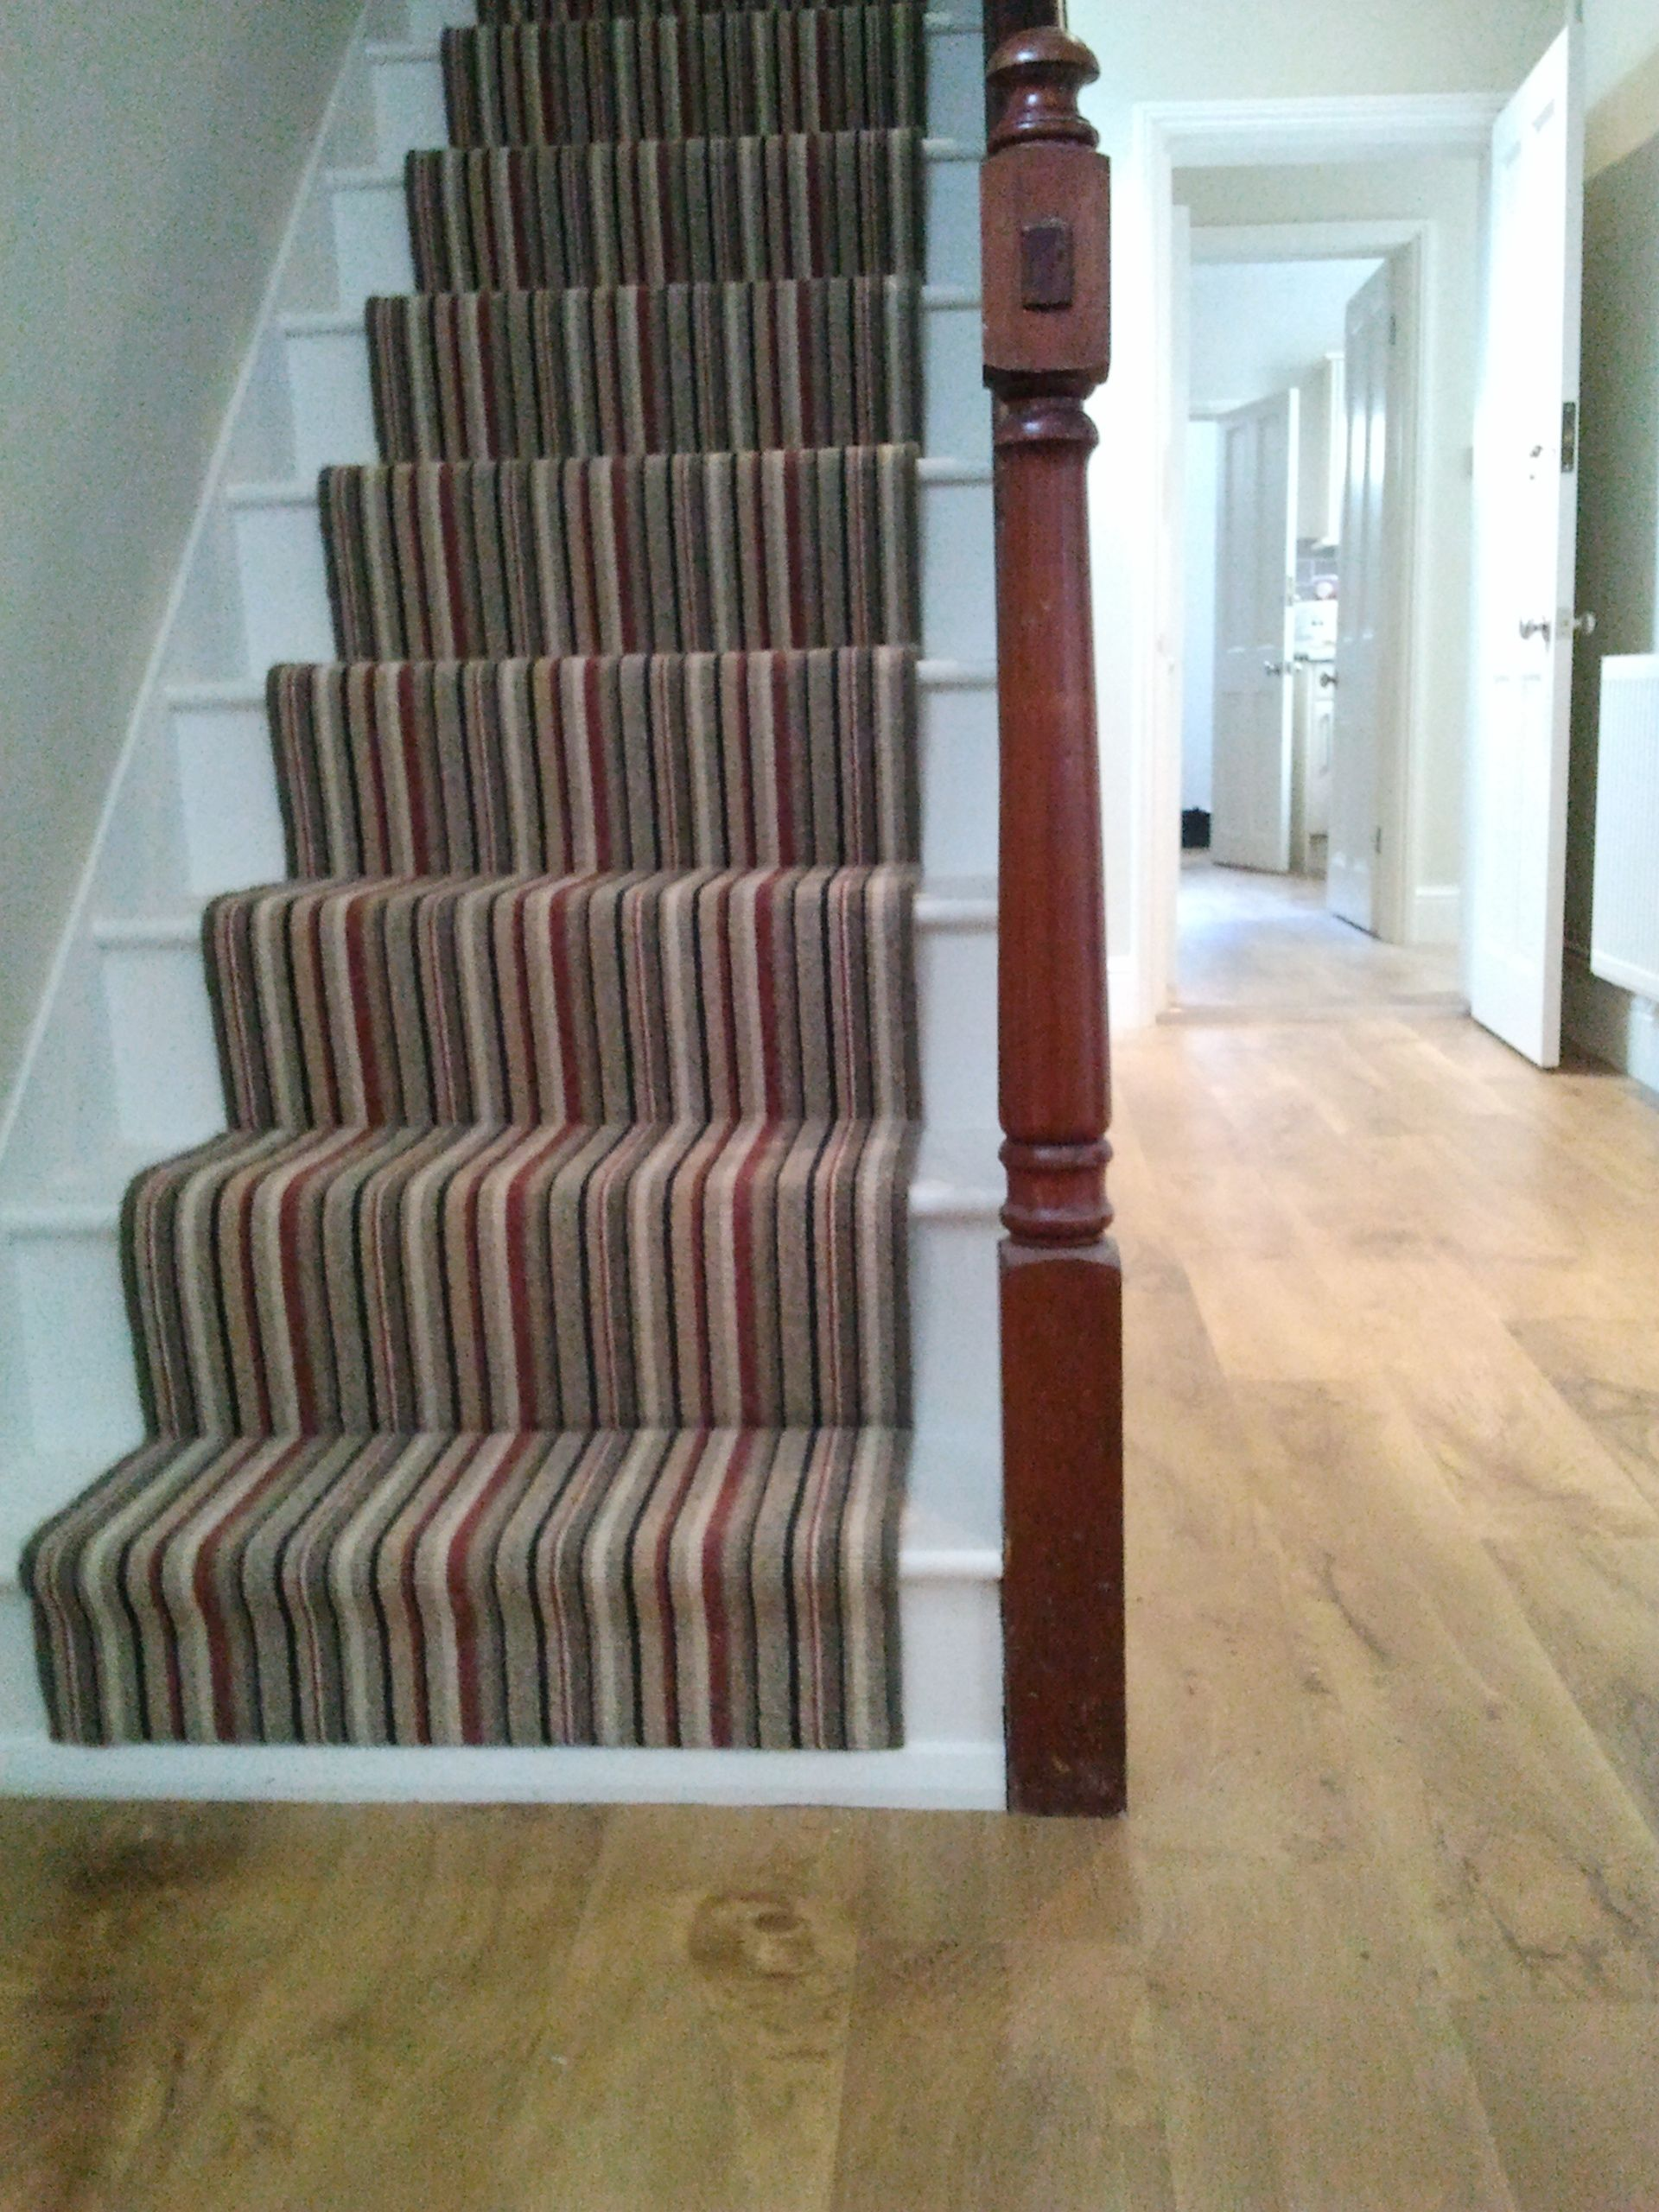 Love the effect of stripes on stairs. Just seems to lead